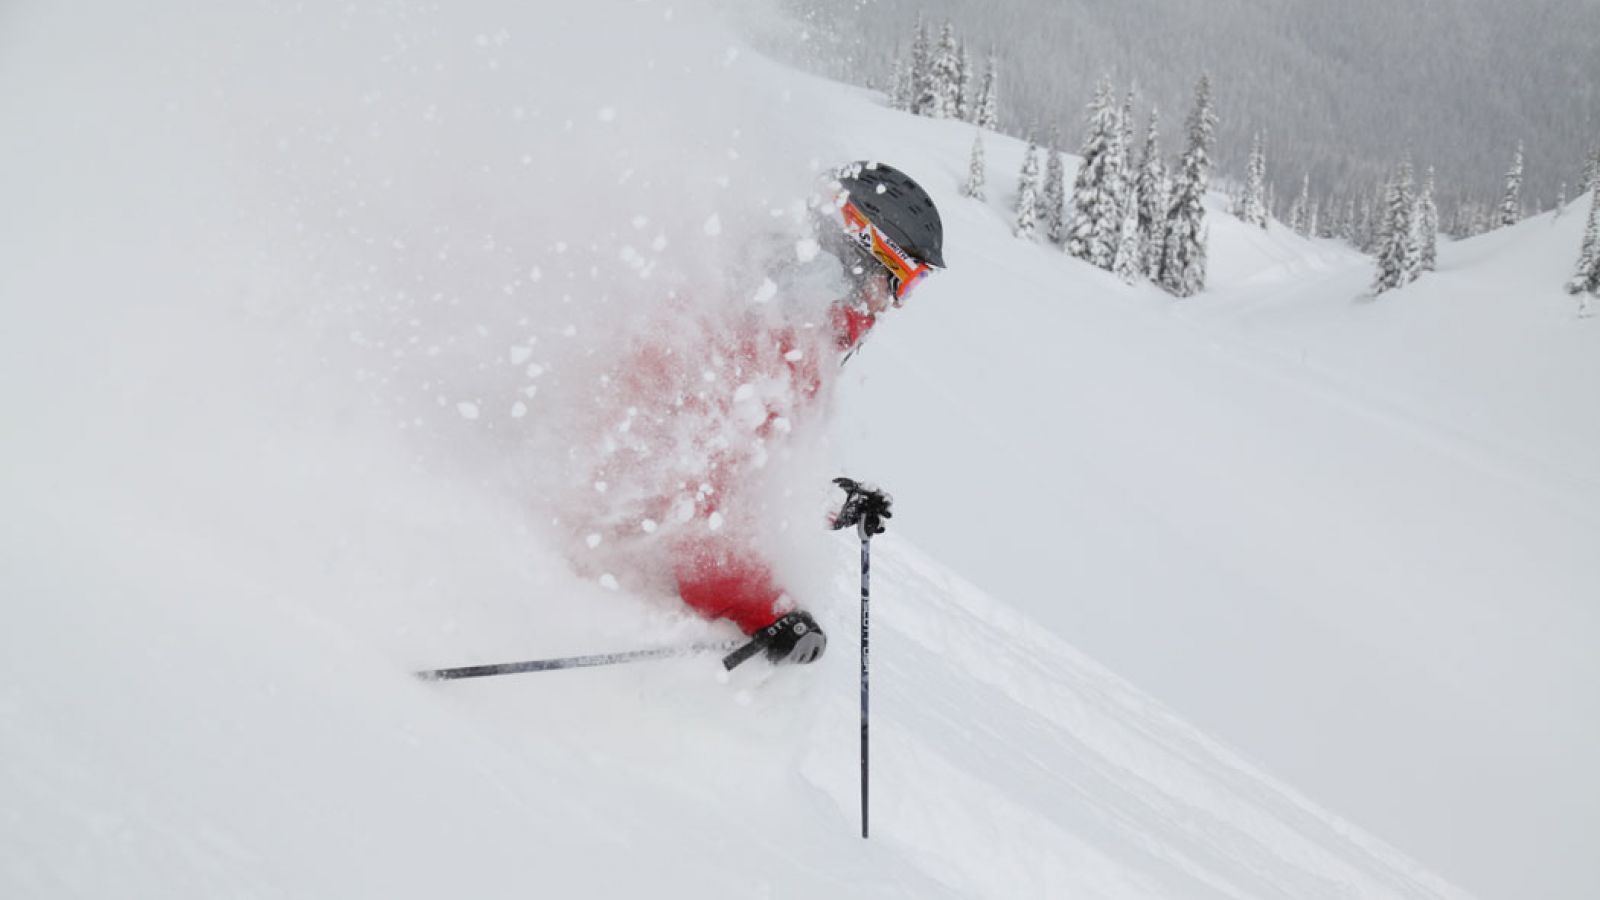 Monashee Powder is a top-ranked powder provider.